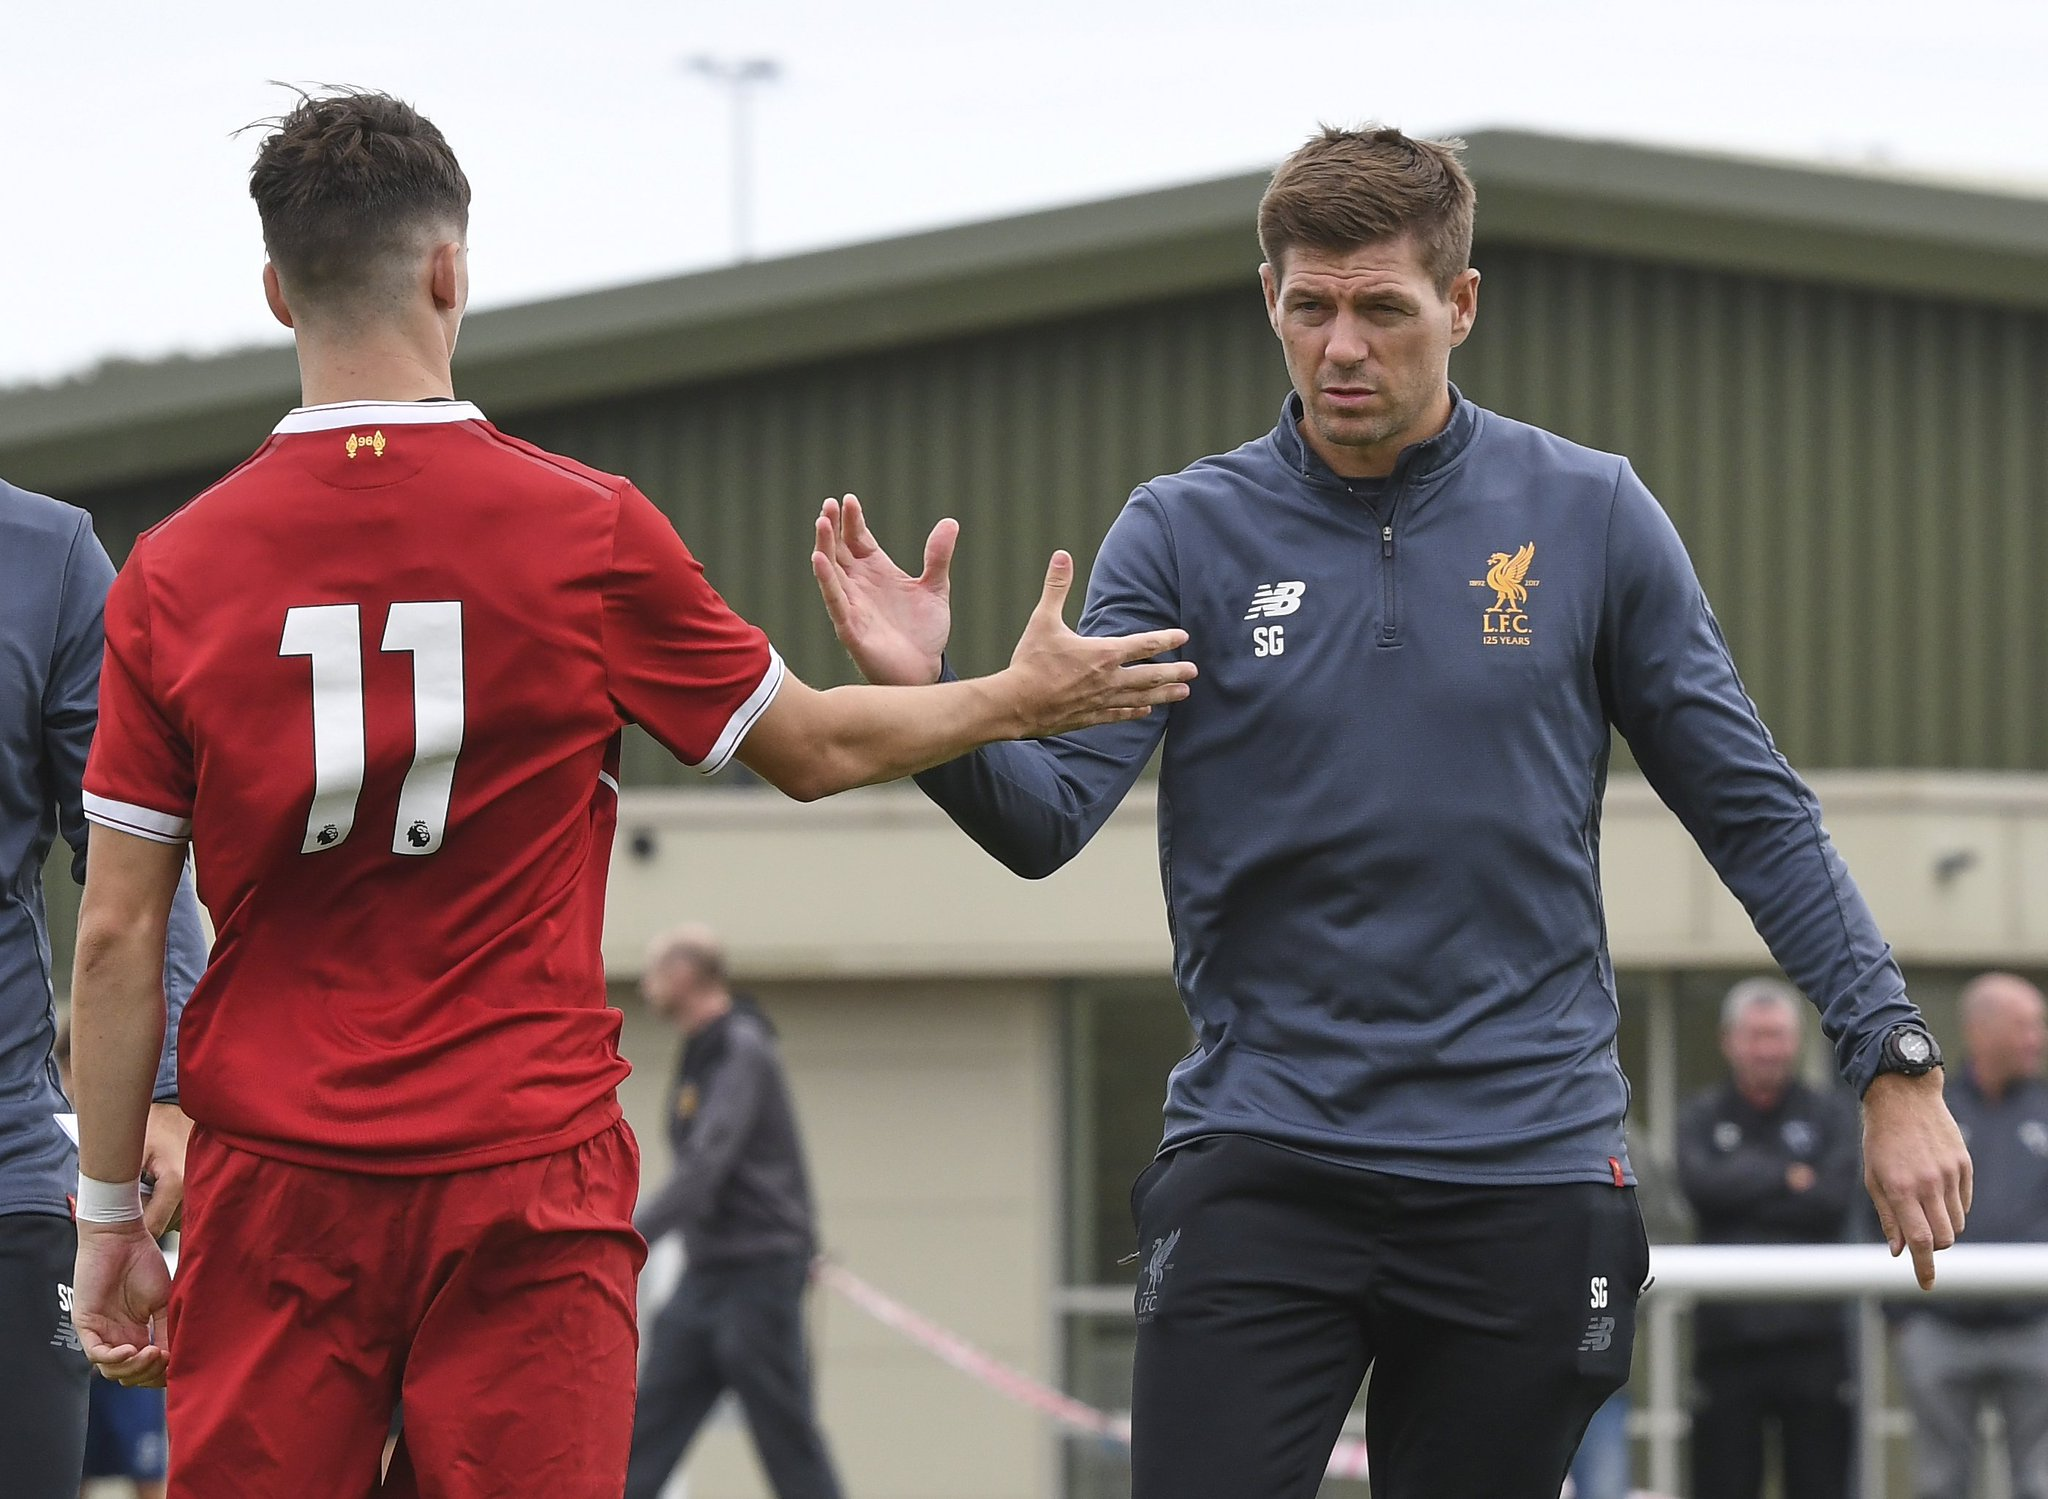 �� @Official_HUFC or @officialcufc up next for #LFCU18s in the FA Youth Cup.  https://t.co/AZHt1Ra7wS https://t.co/SWpv3PTbiN